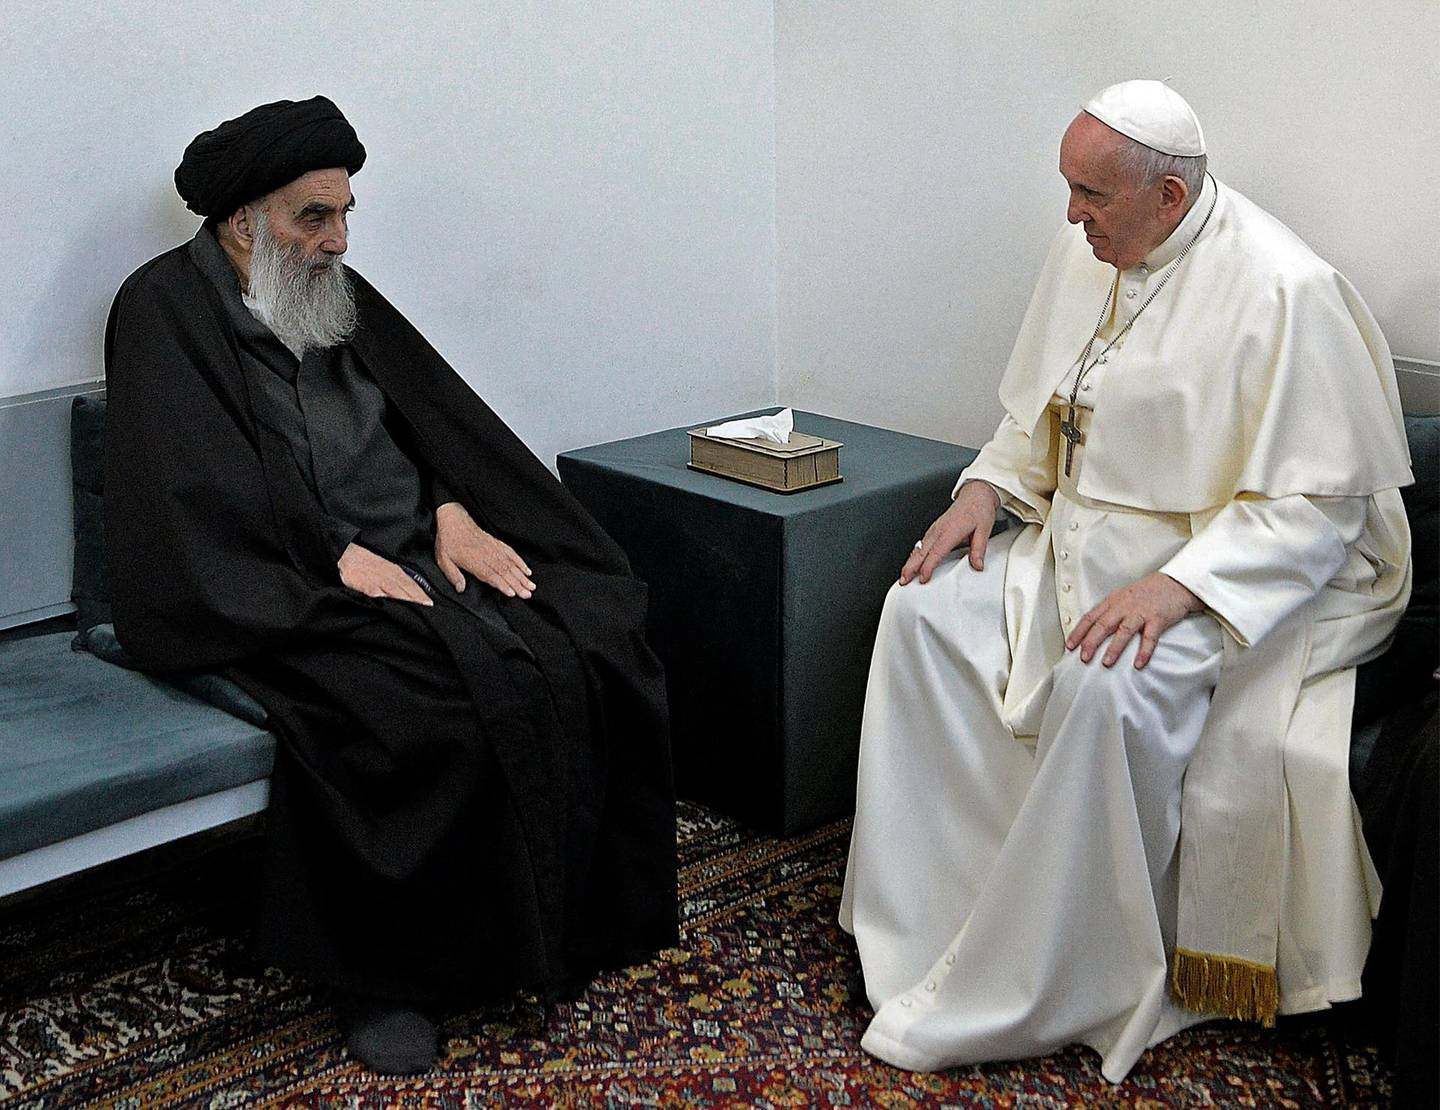 """TOPSHOT - A handout picture provided by the Vatican media office shows Pope Francis meeting top Shiite cleric Grand Ayatollah Ali al-Sistani, in the Iraqi shine city of Najaf, on March 6, 2021. === RESTRICTED TO EDITORIAL USE - MANDATORY CREDIT """"AFP PHOTO / HO / Vatican News"""" - NO MARKETING - NO ADVERTISING CAMPAIGNS - DISTRIBUTED AS A SERVICE TO CLIENTS ===  / AFP / VATICAN MEDIA / STRINGER / === RESTRICTED TO EDITORIAL USE - MANDATORY CREDIT """"AFP PHOTO / HO / Vatican News"""" - NO MARKETING - NO ADVERTISING CAMPAIGNS - DISTRIBUTED AS A SERVICE TO CLIENTS ==="""